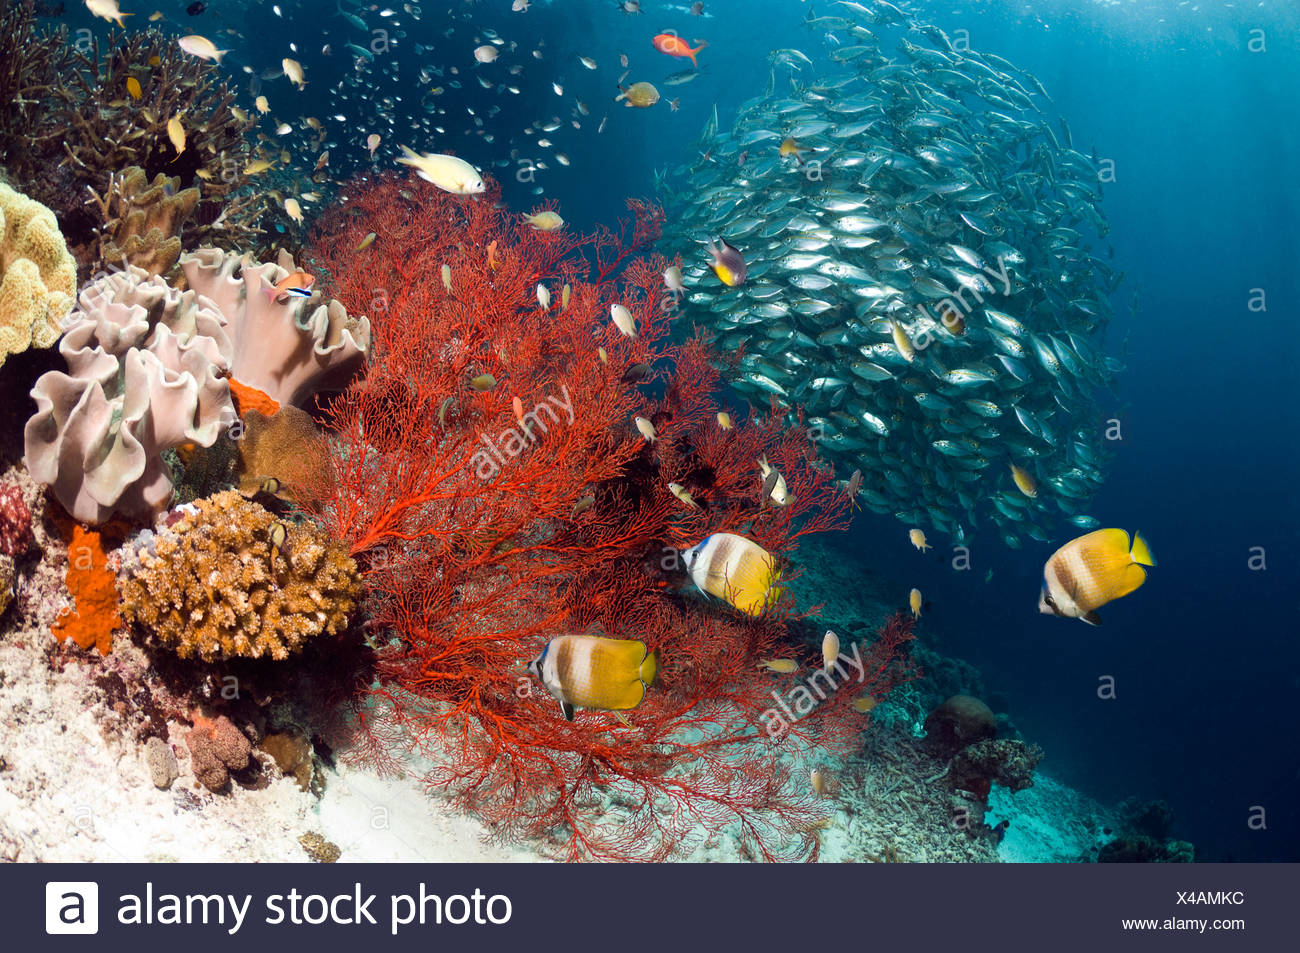 Coral reef scenery with Klein's butterflyfish with gorgonian and a school of Bigeye scad, Misool, West Papua, Indonesia. - Stock Image